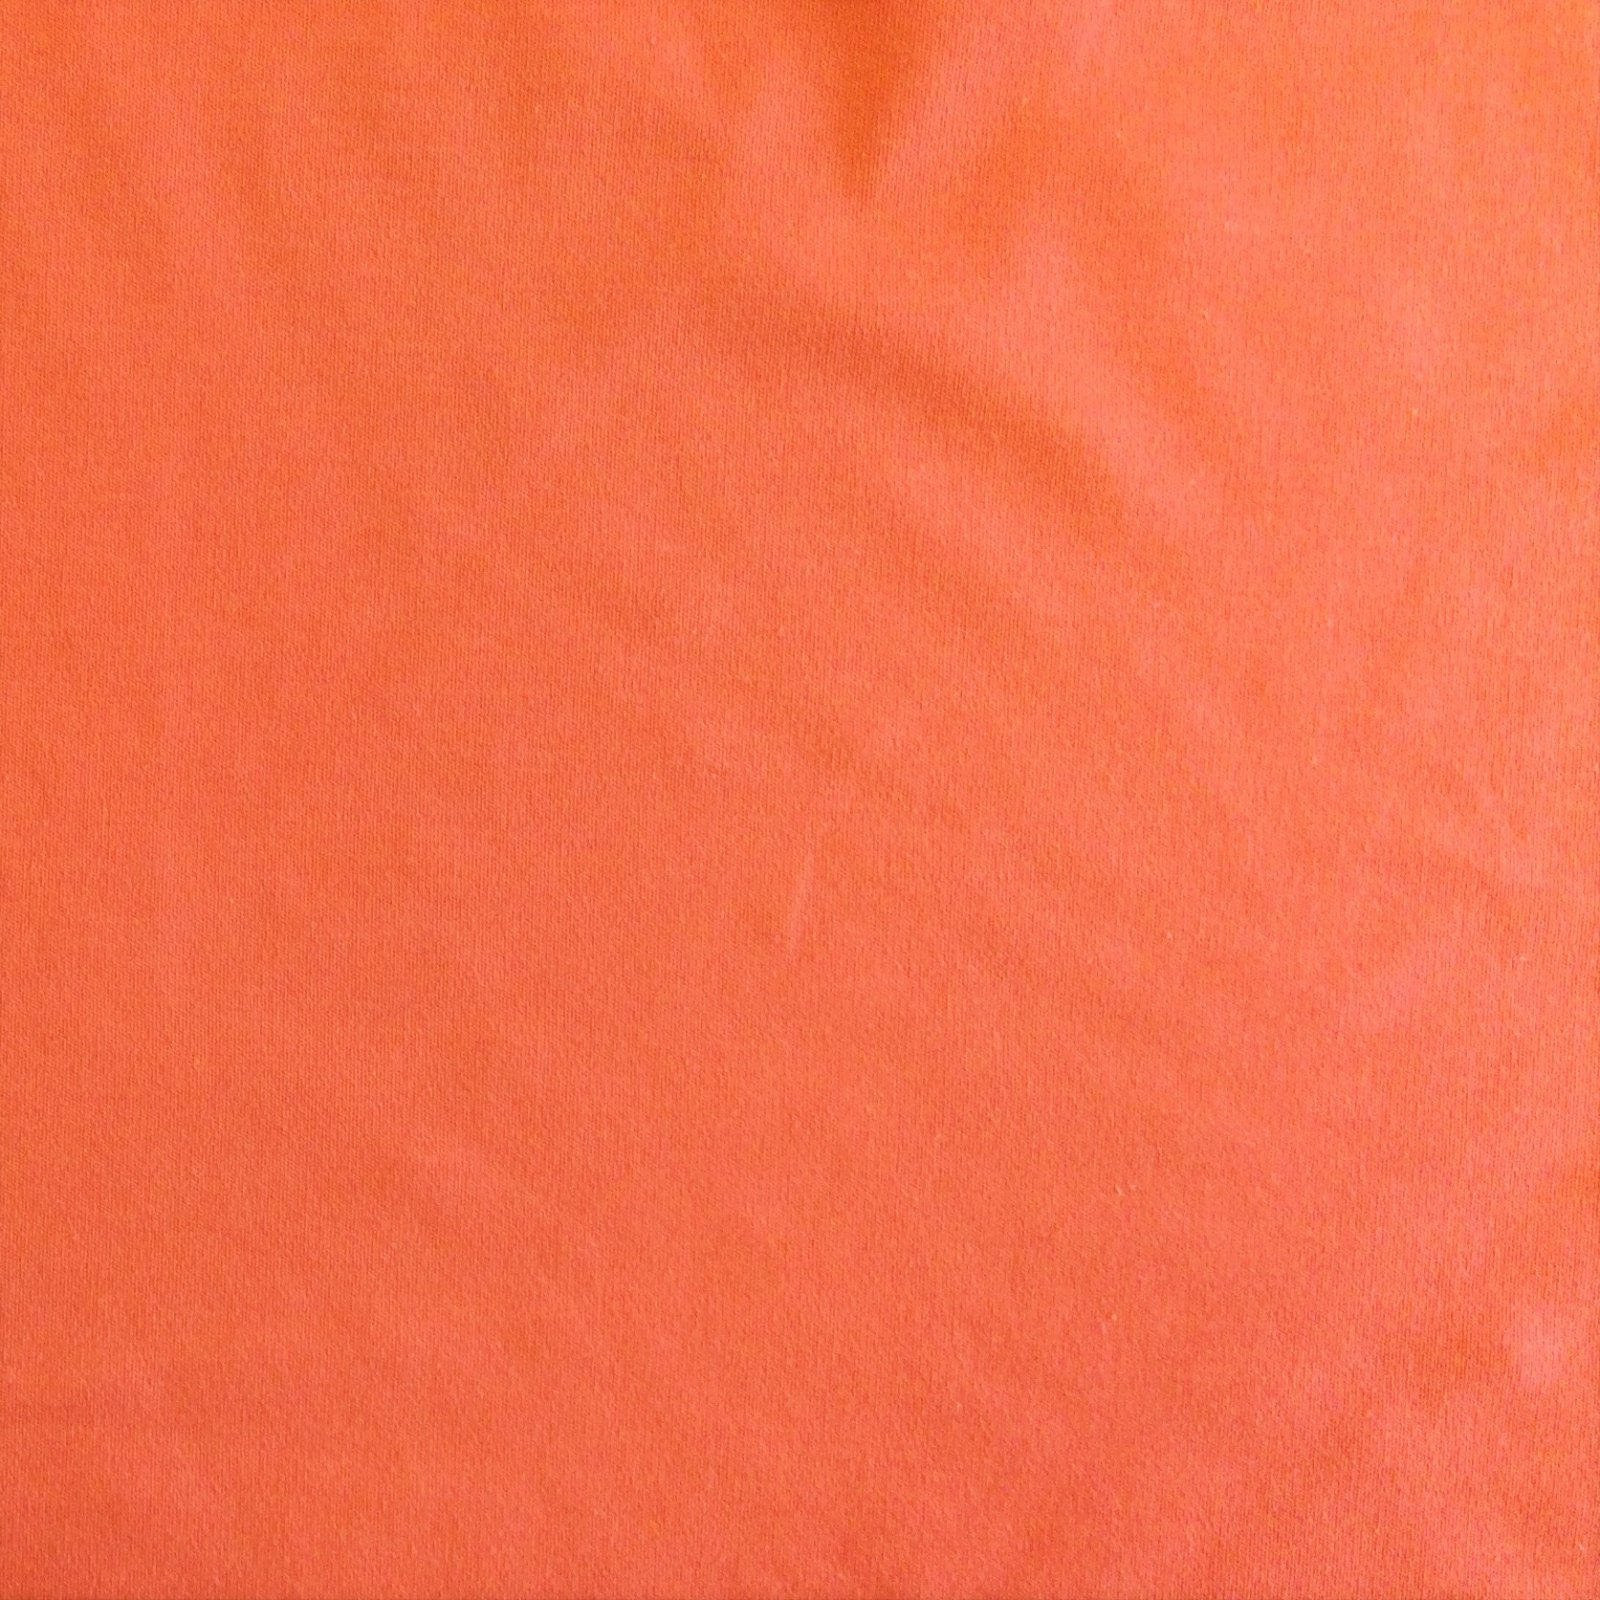 Sweatshirt Fleece Cotton Blend Bare Knits Tangerine